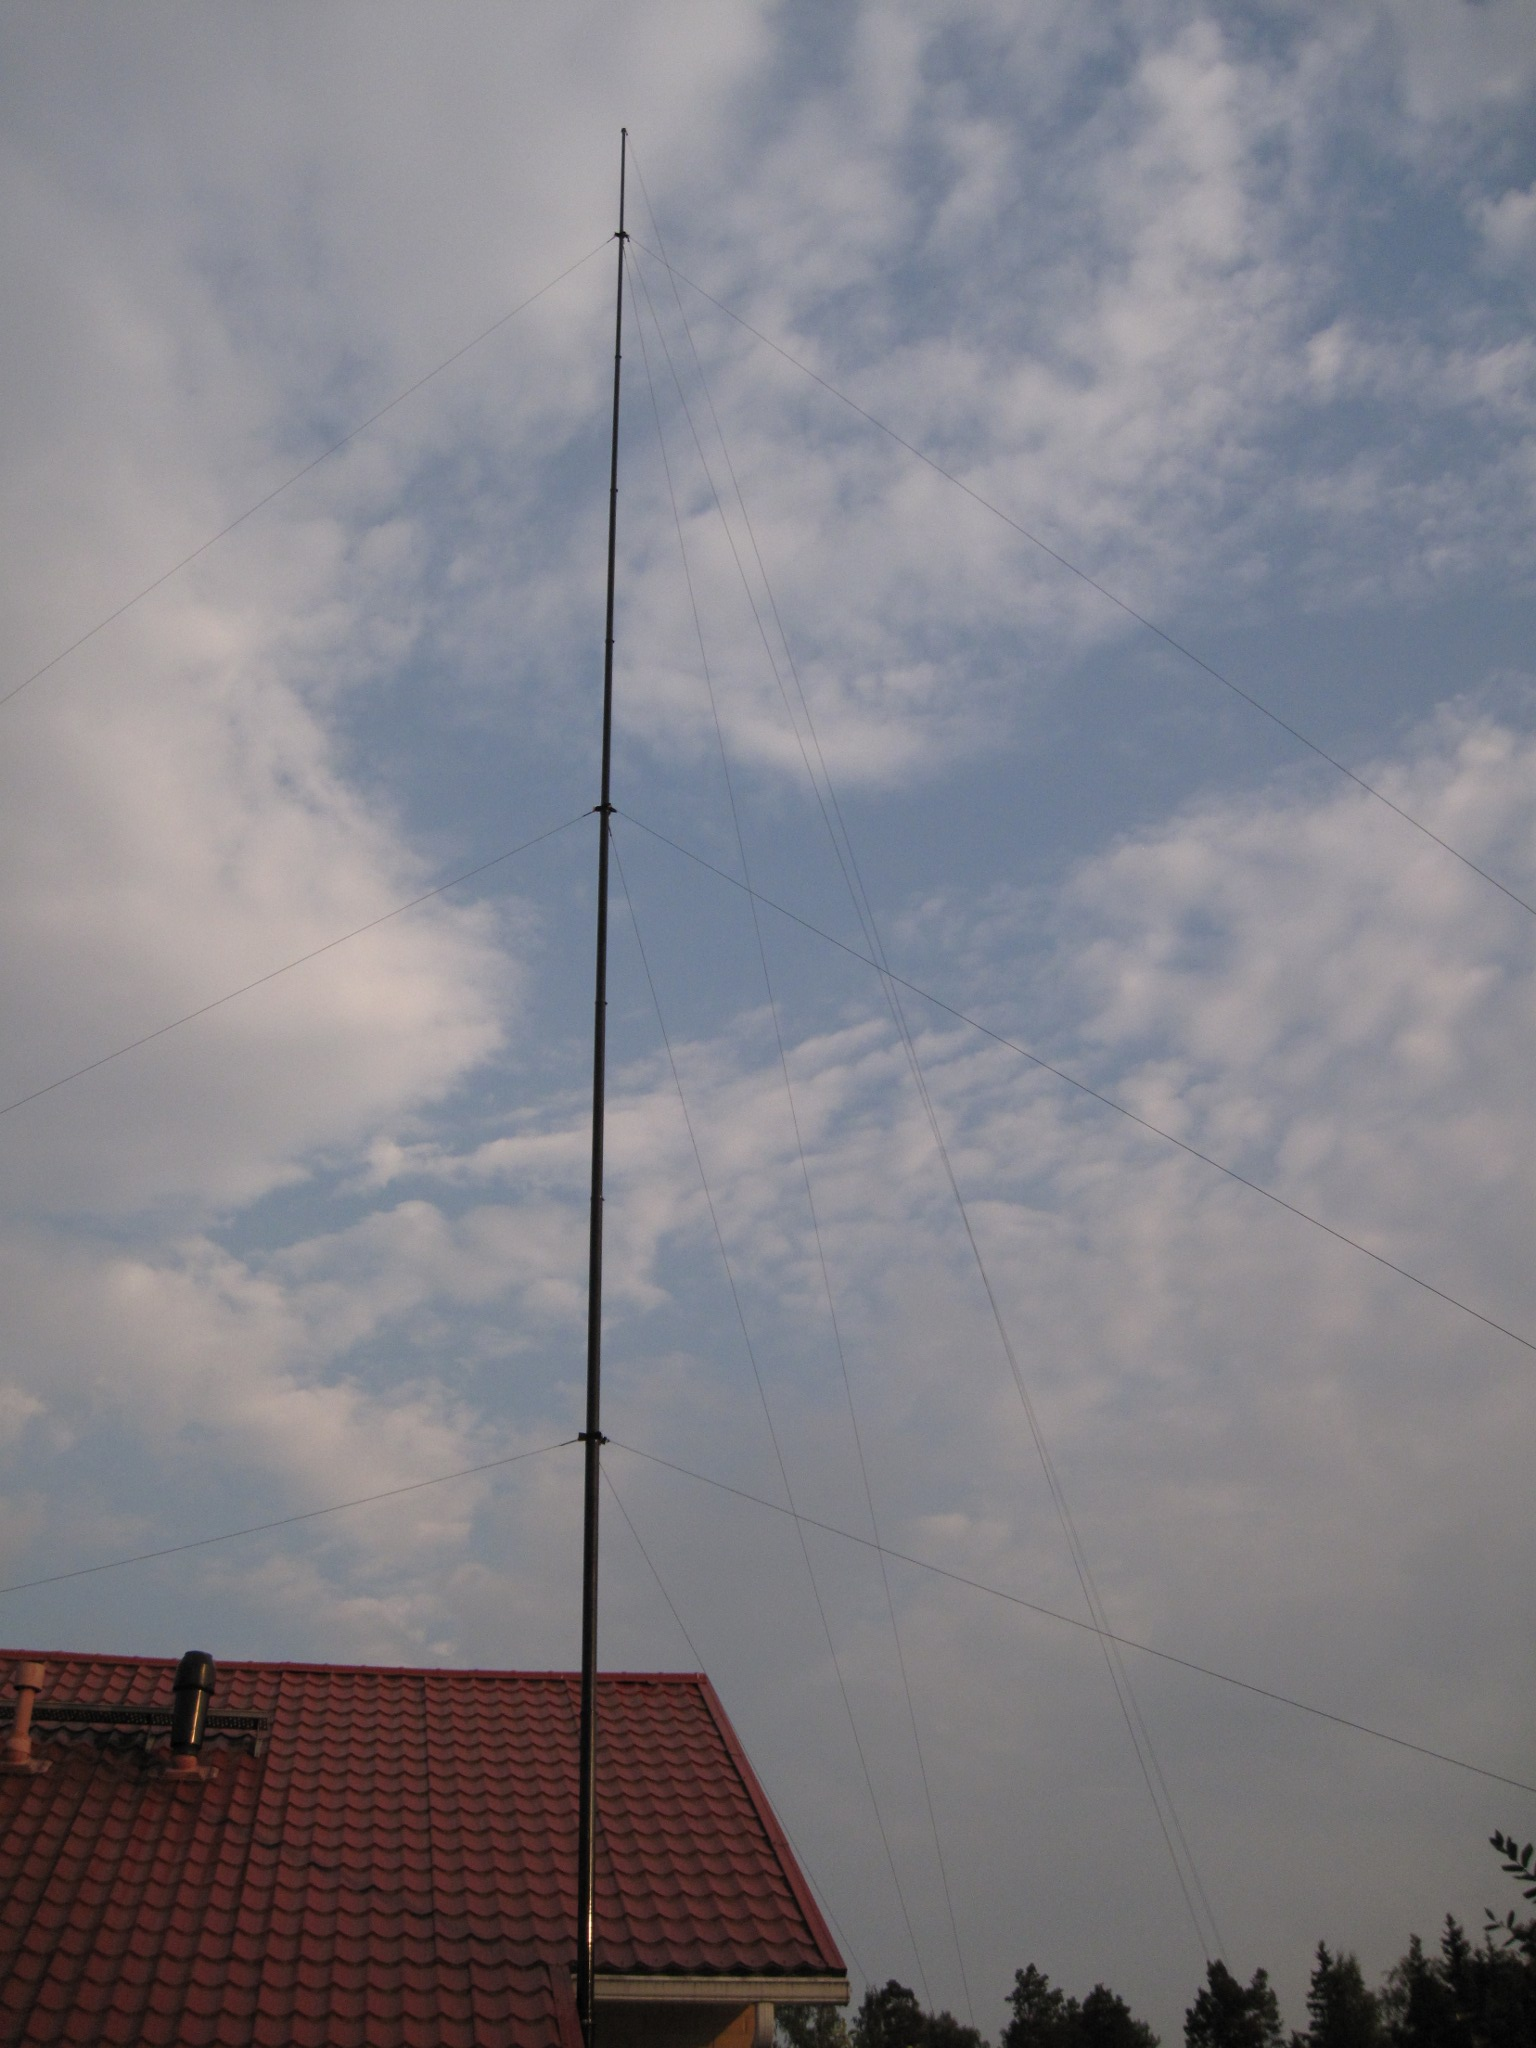 The 26 m Spiderpole is shortened to 20+m by taking off three top sections